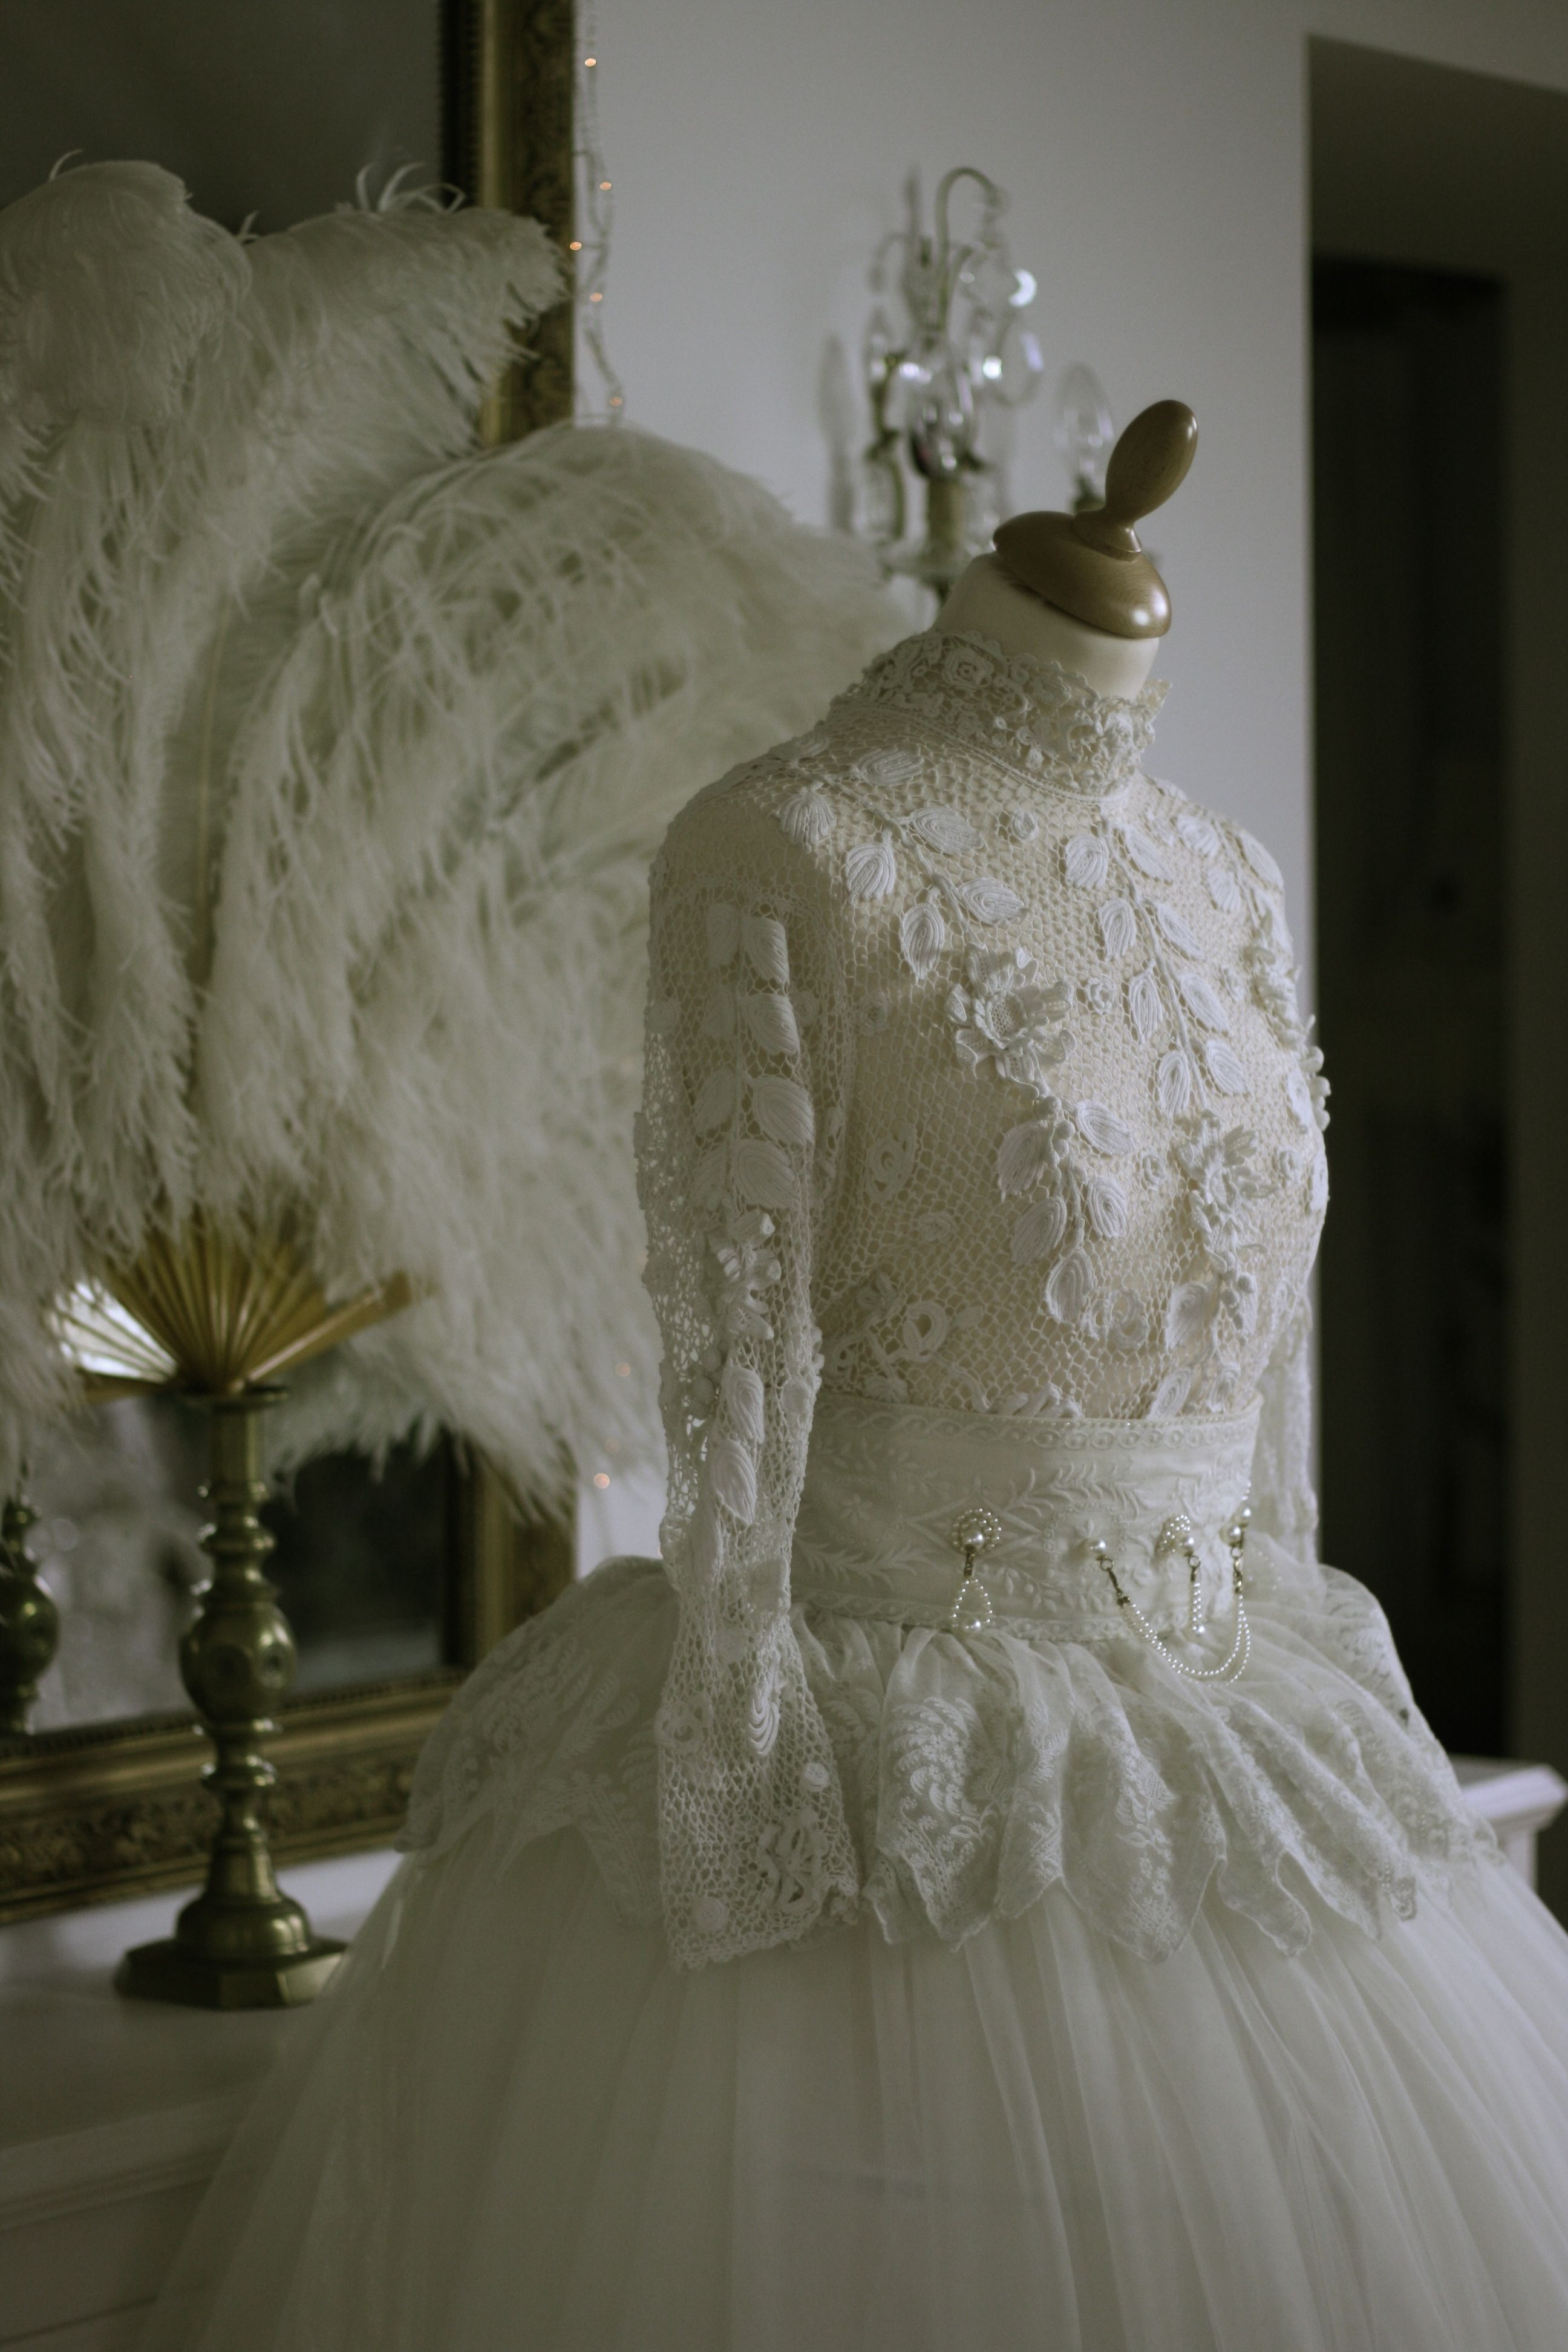 Antique Lace Wedding Bodice From